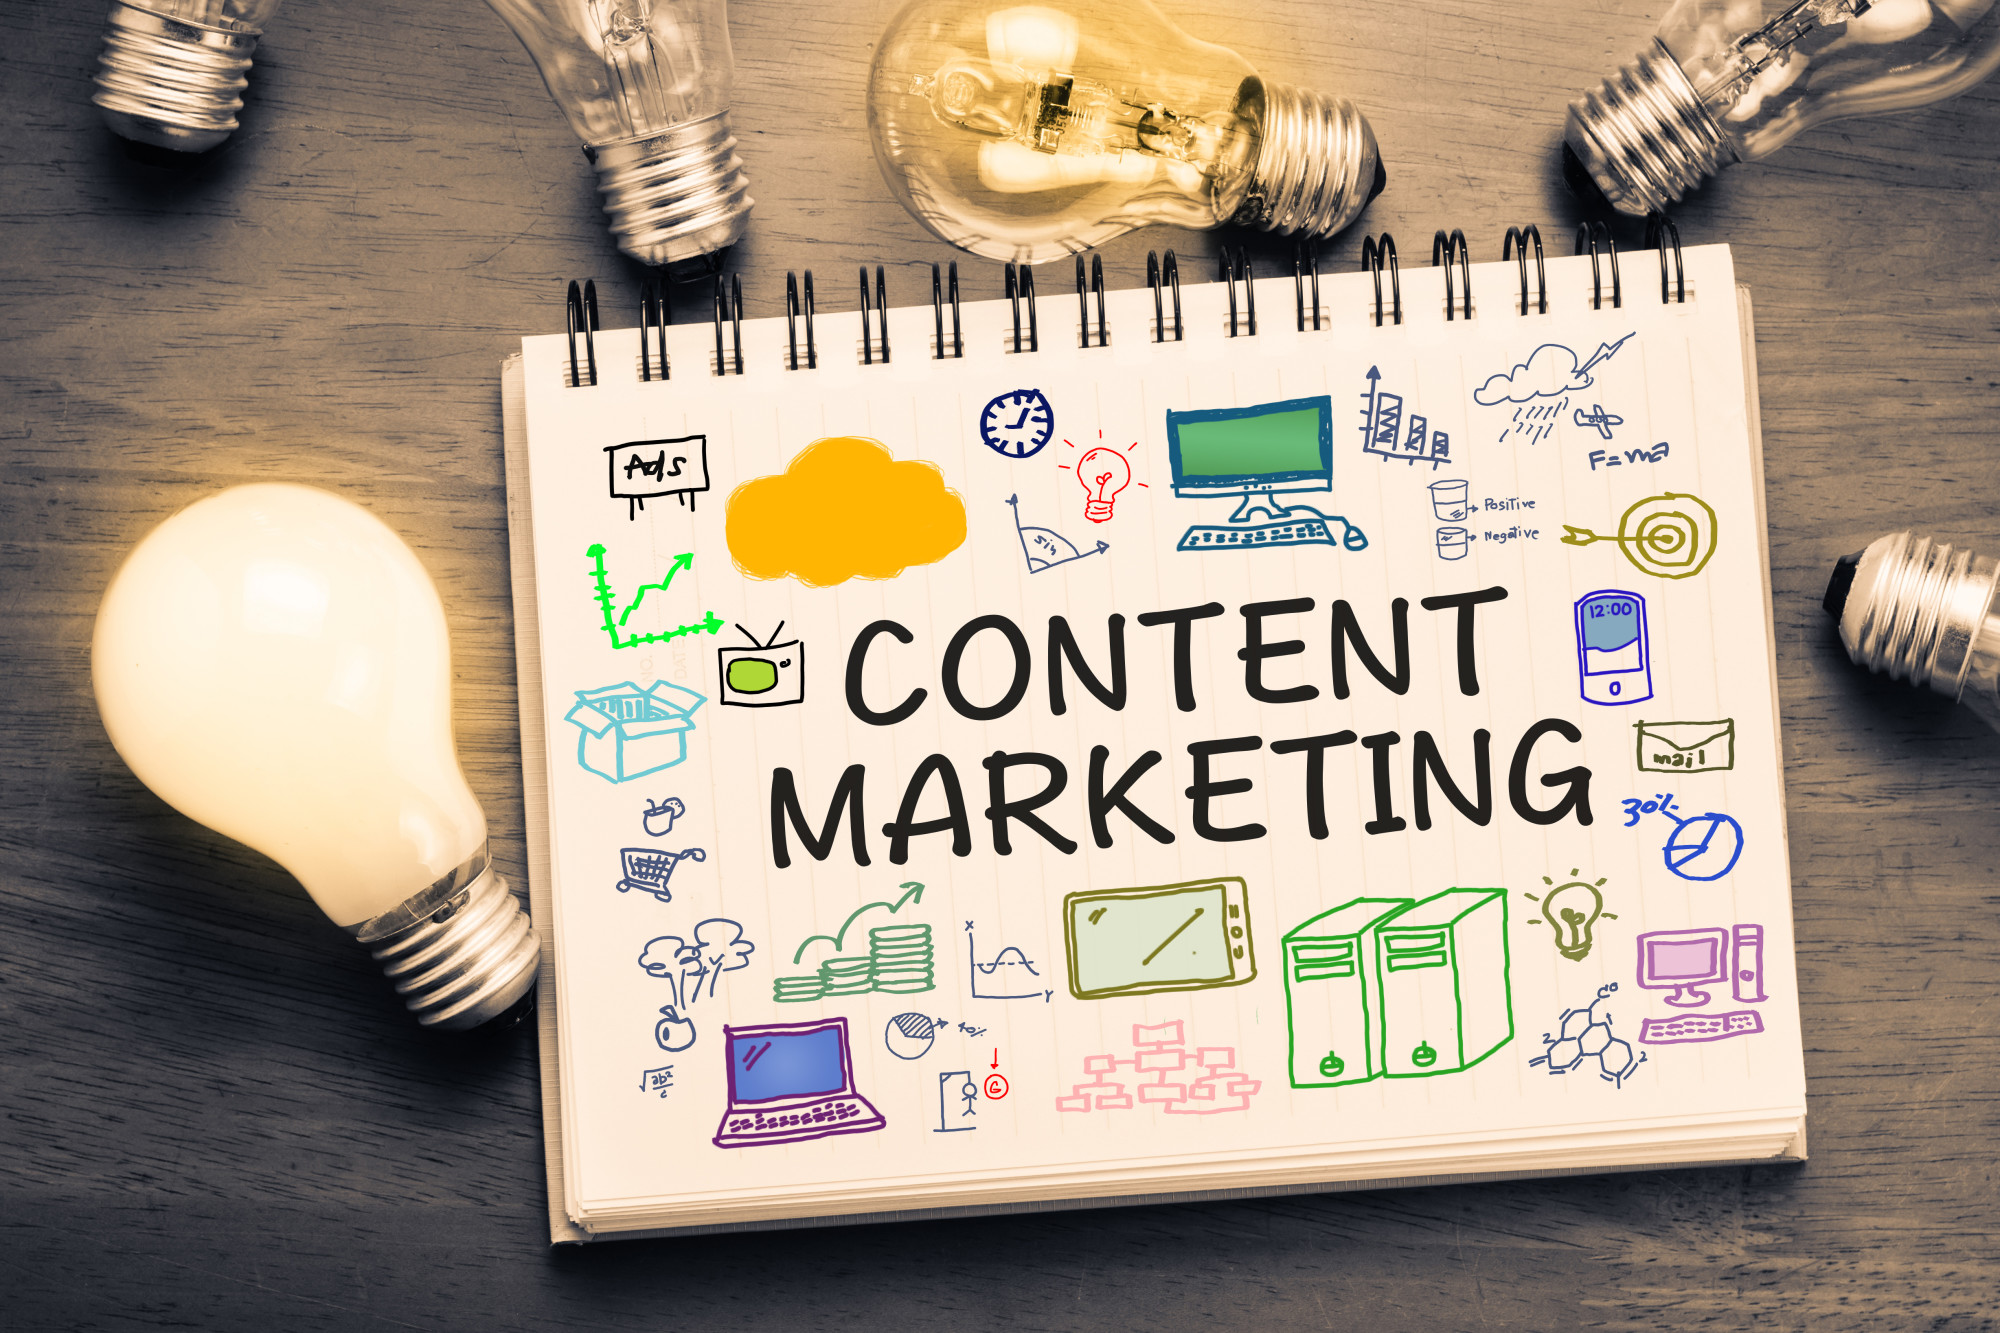 content marketing text and icons